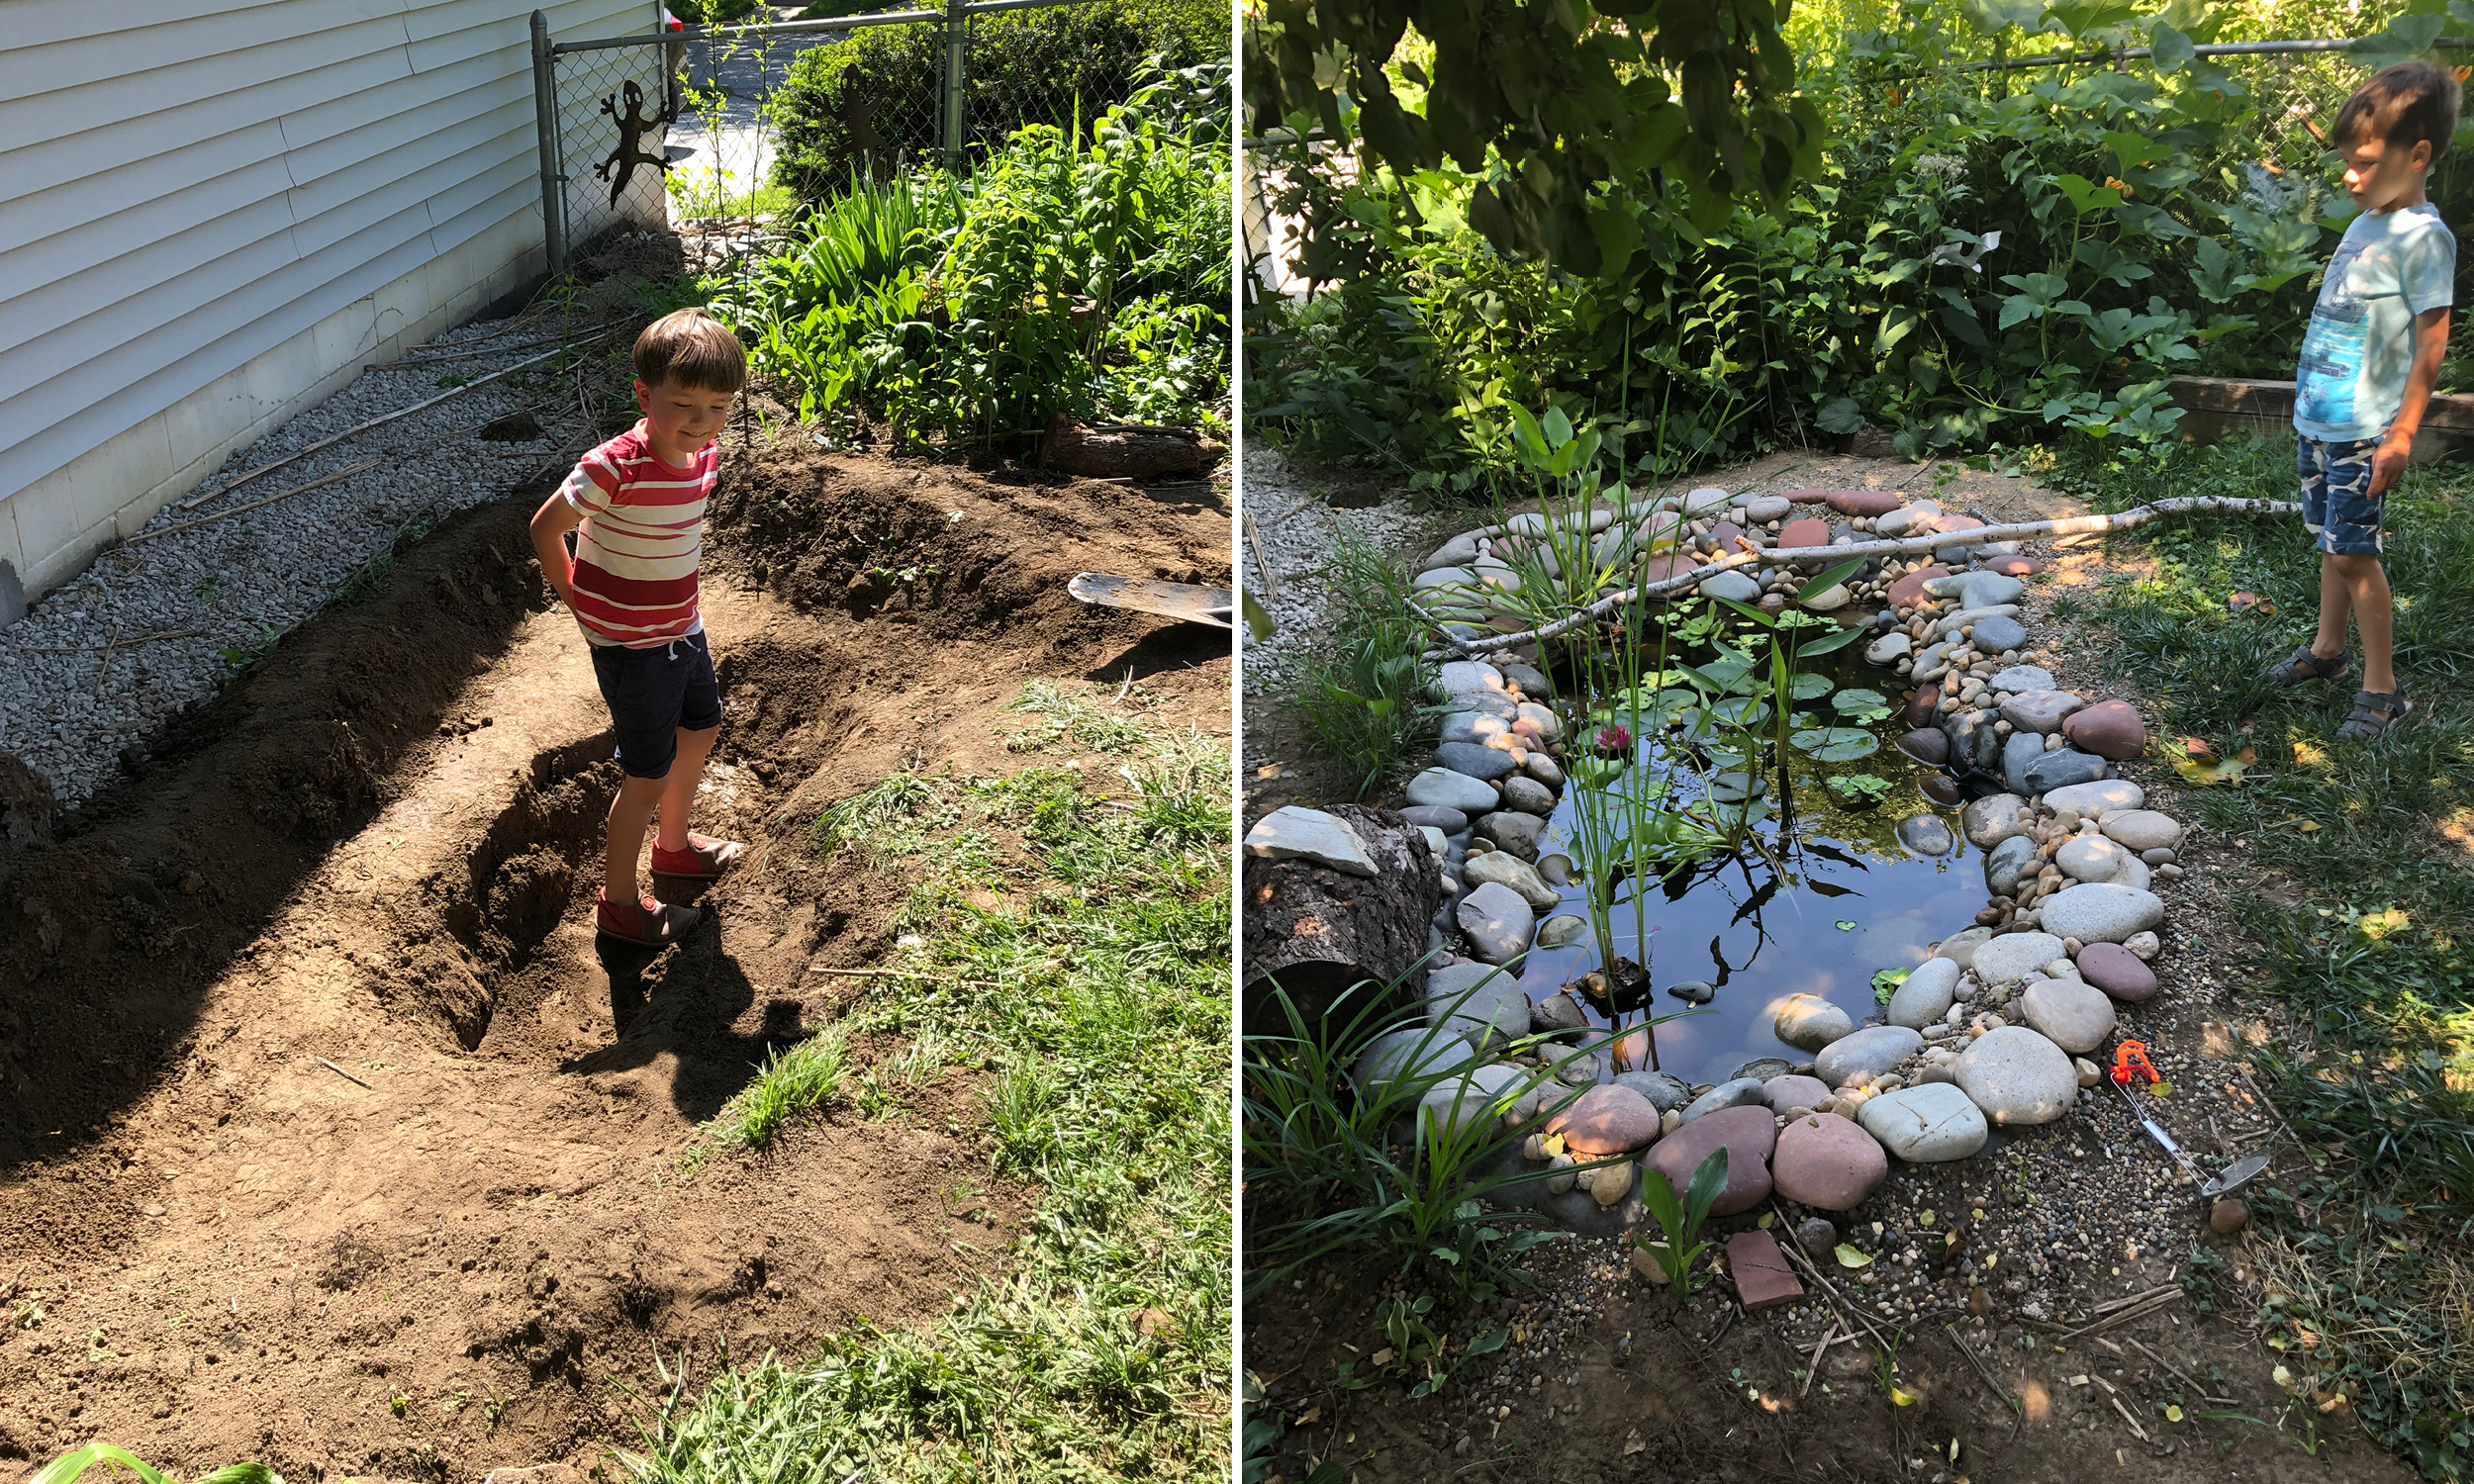 A pair of photos showing the pond while being dug into the bare dirt (left) and the completed pond with lily pads and other plants growing in it (right)